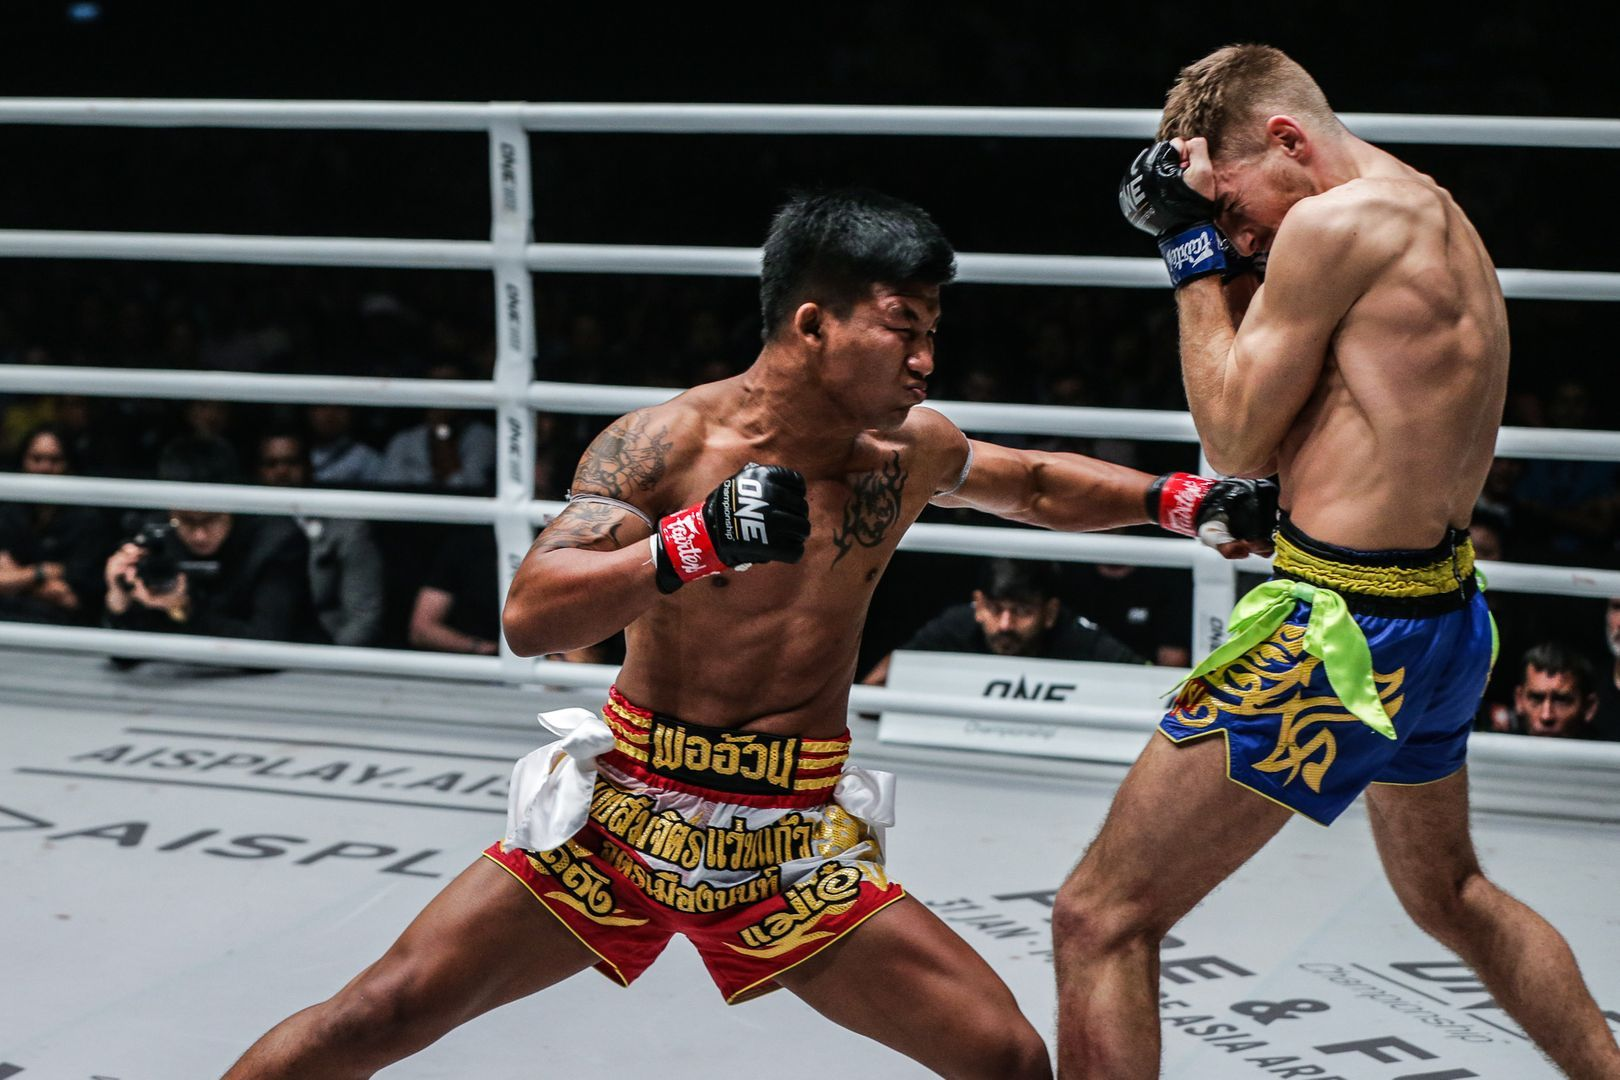 ONE Flyweight Muay Thai World Champion Rodtang Jitmuangnon cracks Jonathan Haggerty in the tummy